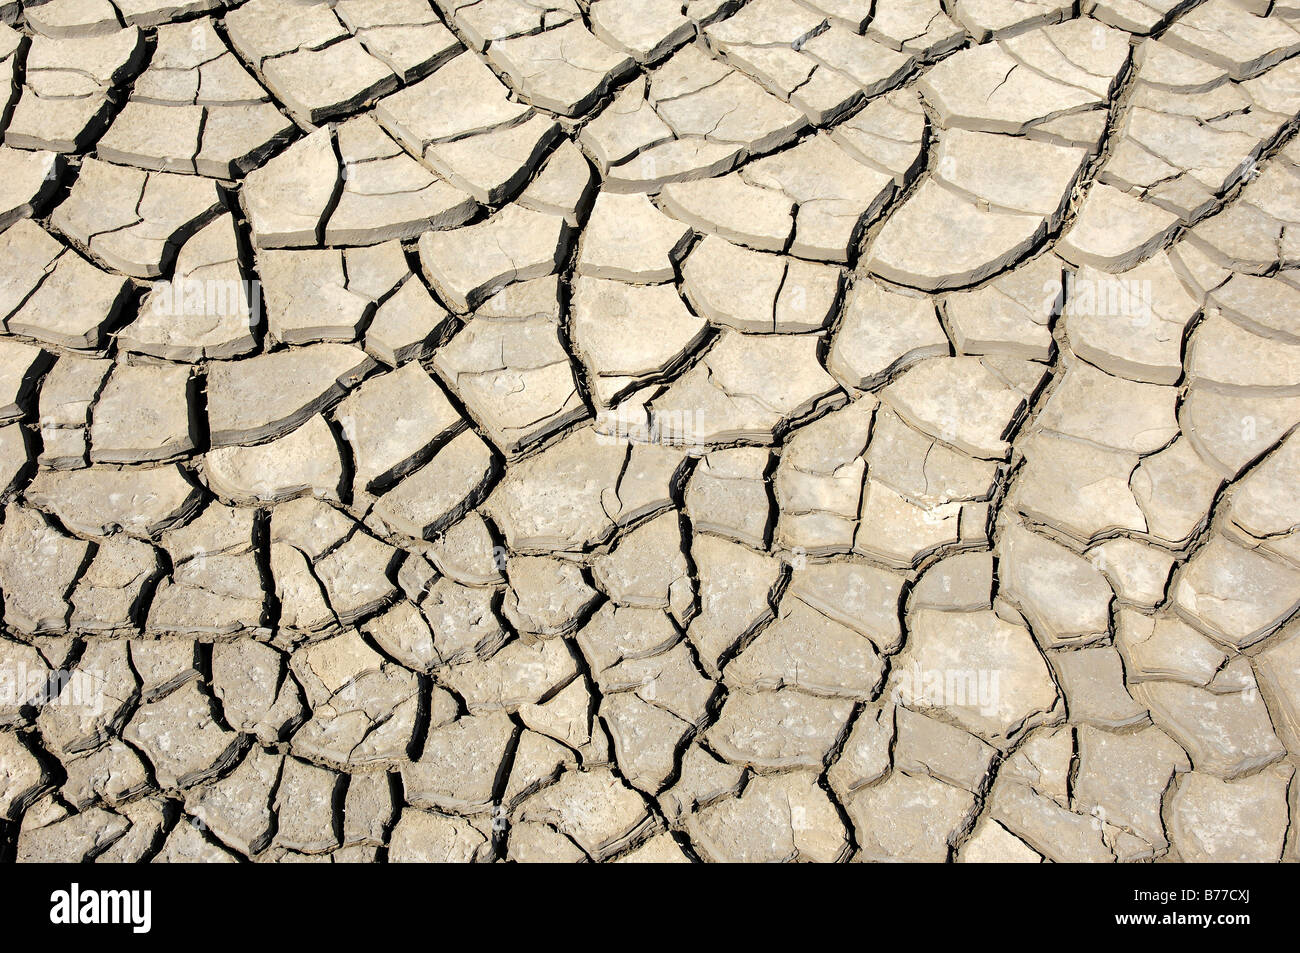 Dried out earth, Camargue, Provence, Southern France, France, Europe - Stock Image